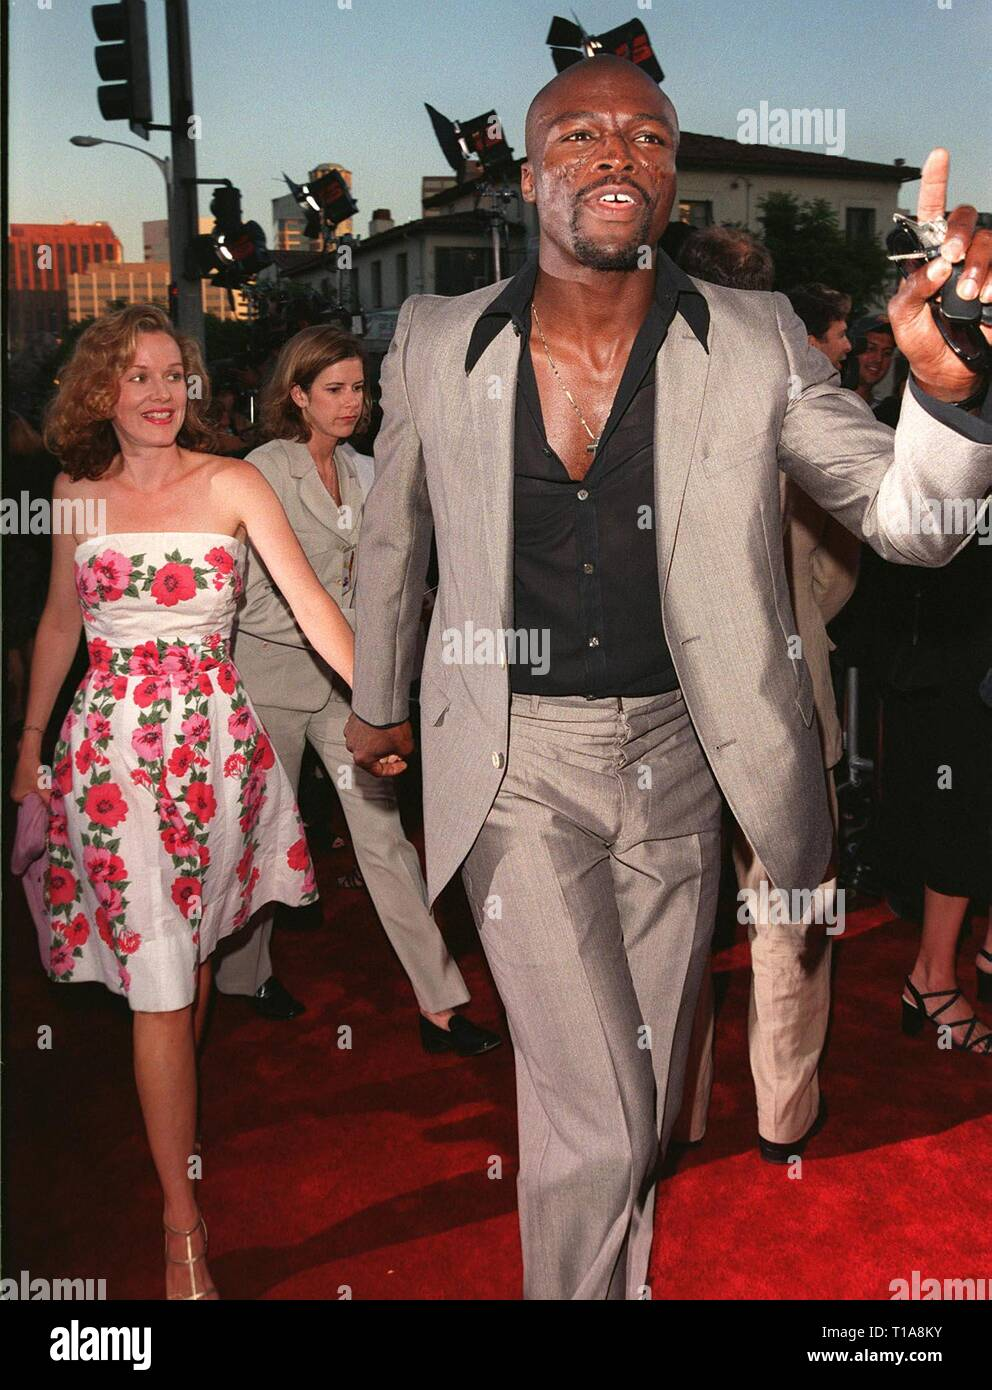 LOS ANGELES, CA - July 9, 1998: Pop star SEAL & actress PENELOPE ANN MILLER at the world premiere, in Los Angeles, of 'There's Something About Mary.' - Stock Image